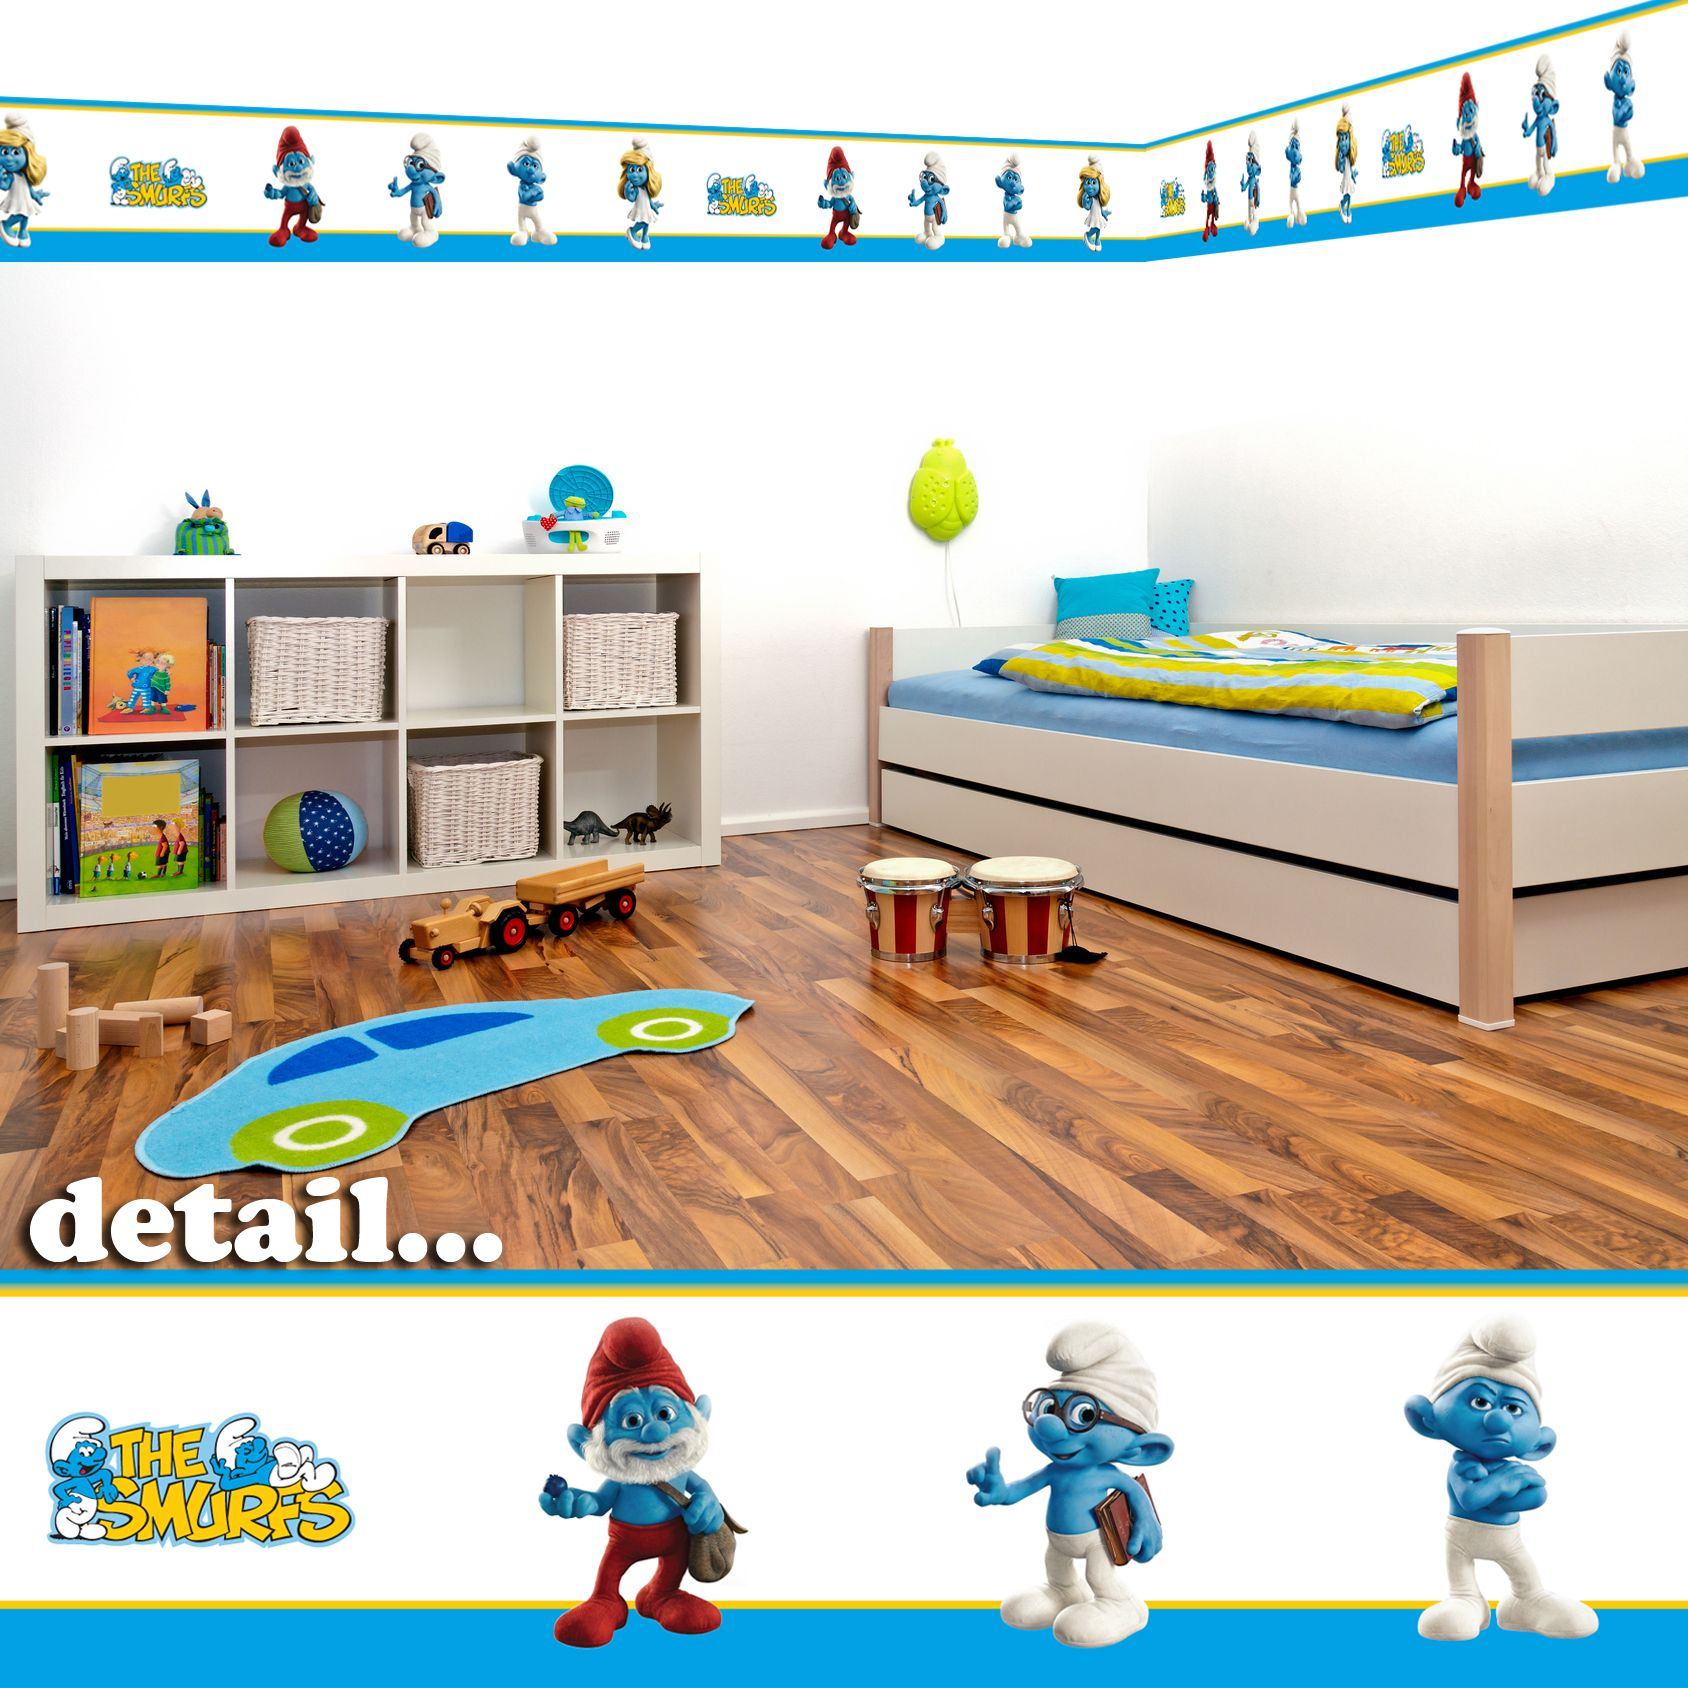 Best Details About Smurfs Self Adhesive Decorative Wall Border 5M Children S Bedroom Playroom 400 x 300